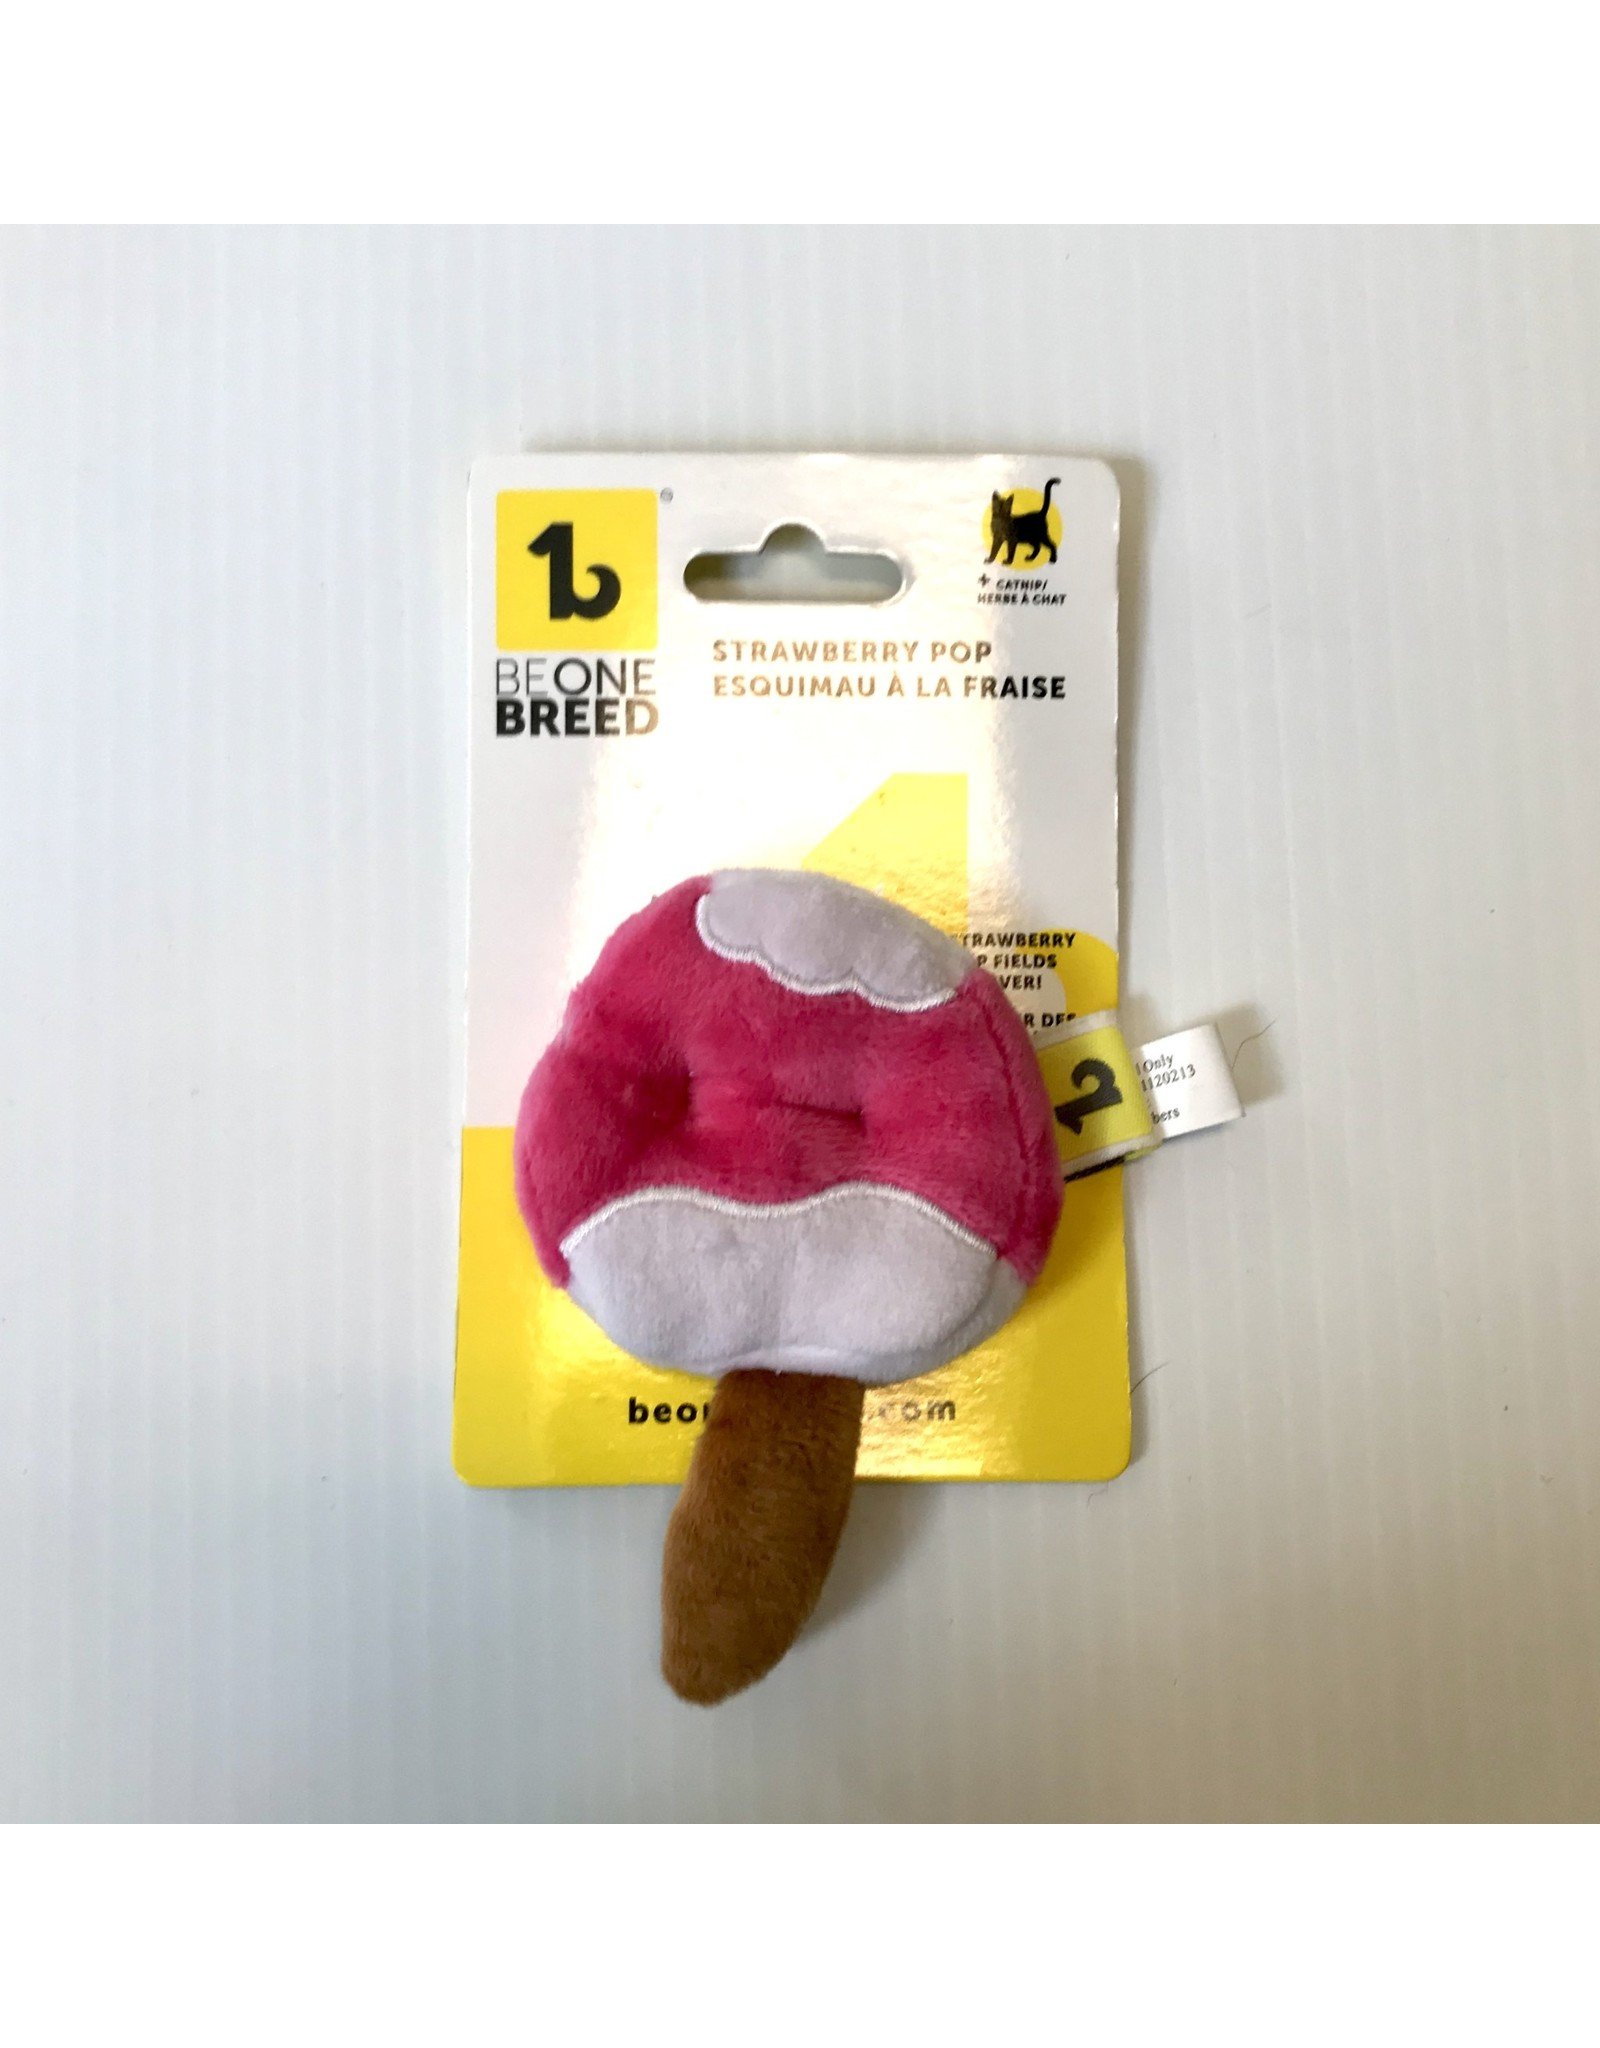 BeOneBreed BeOneBreed Cat Toy - Strawberry Pop